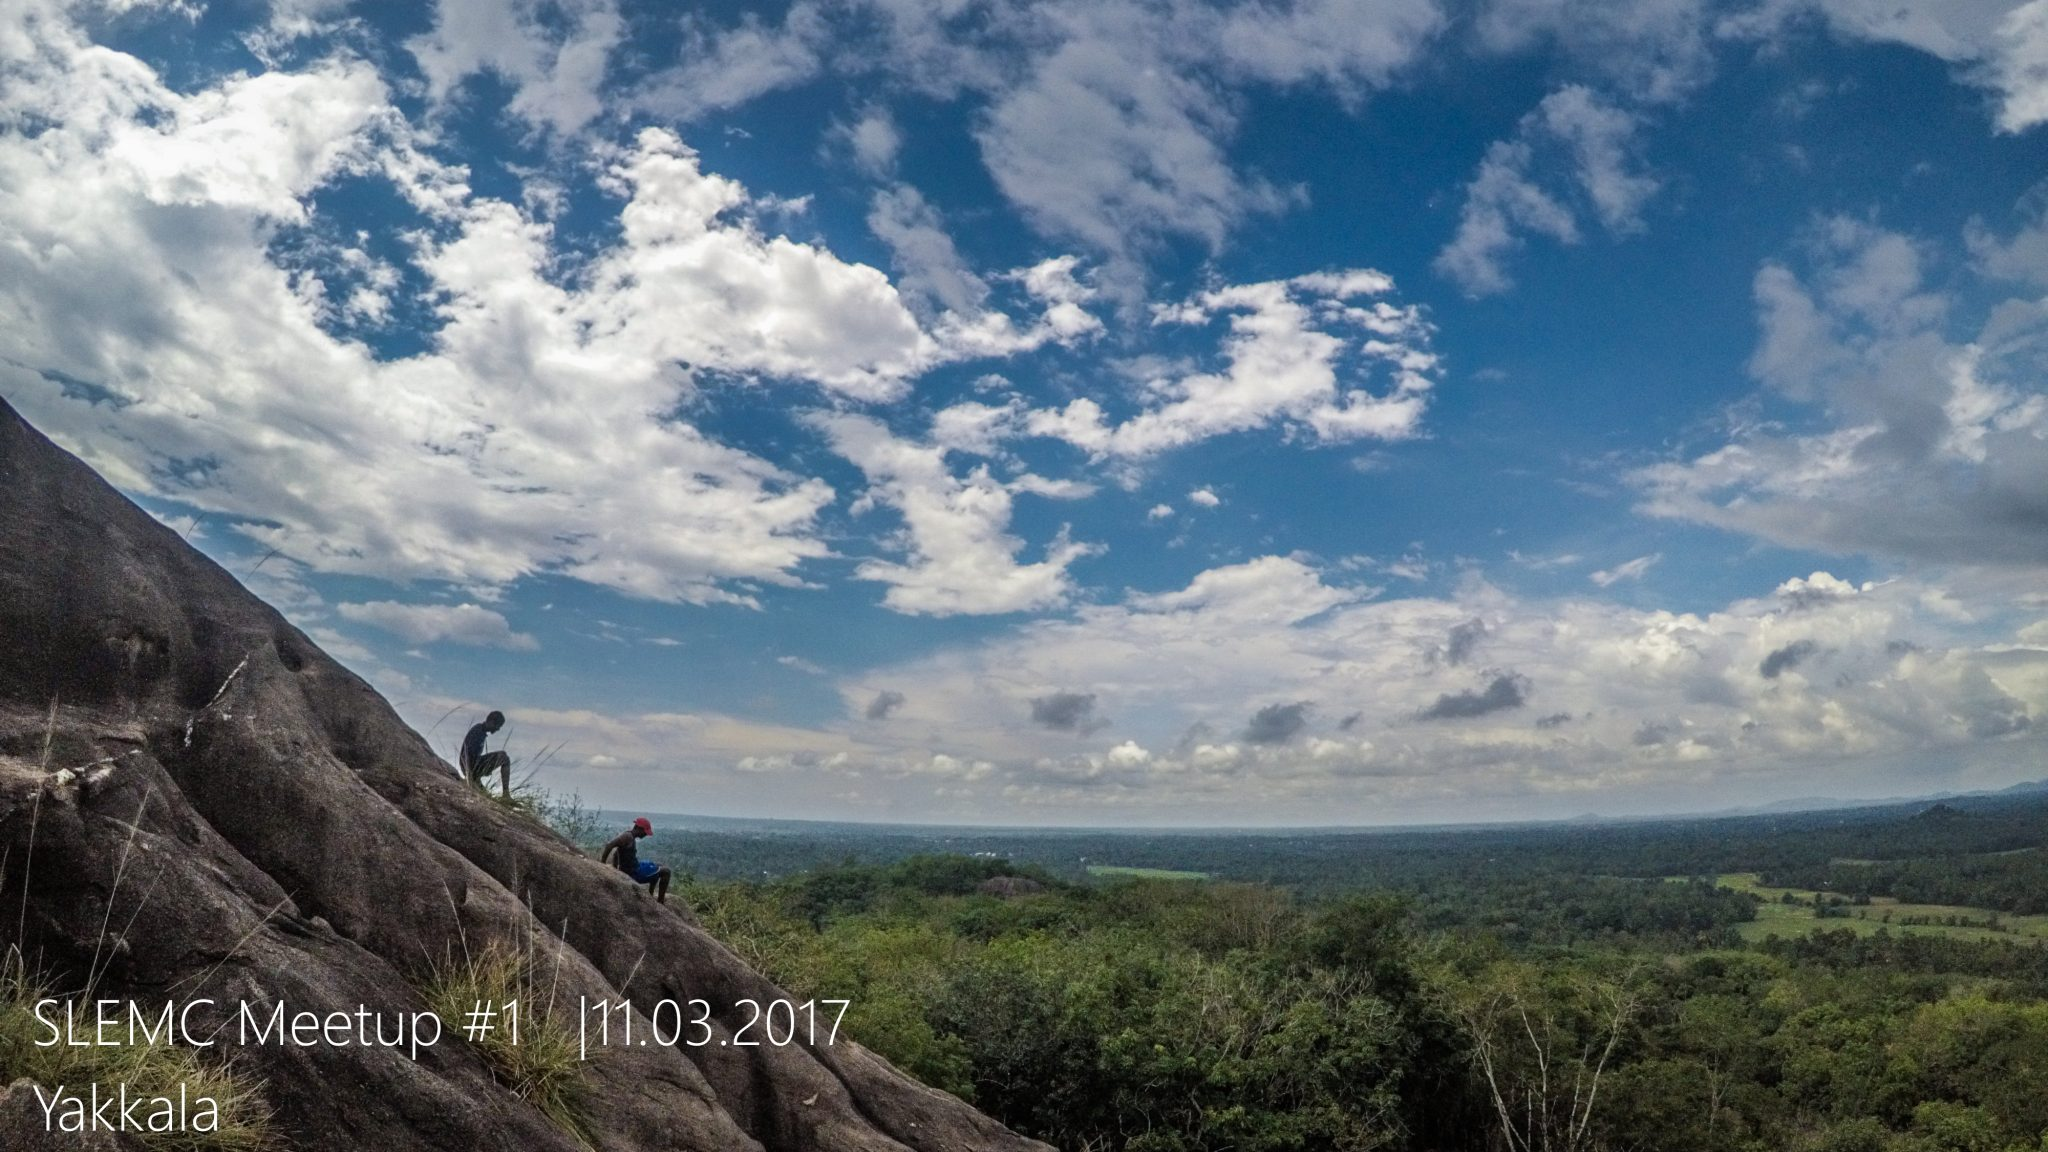 Climbers meet up Sri Lanka